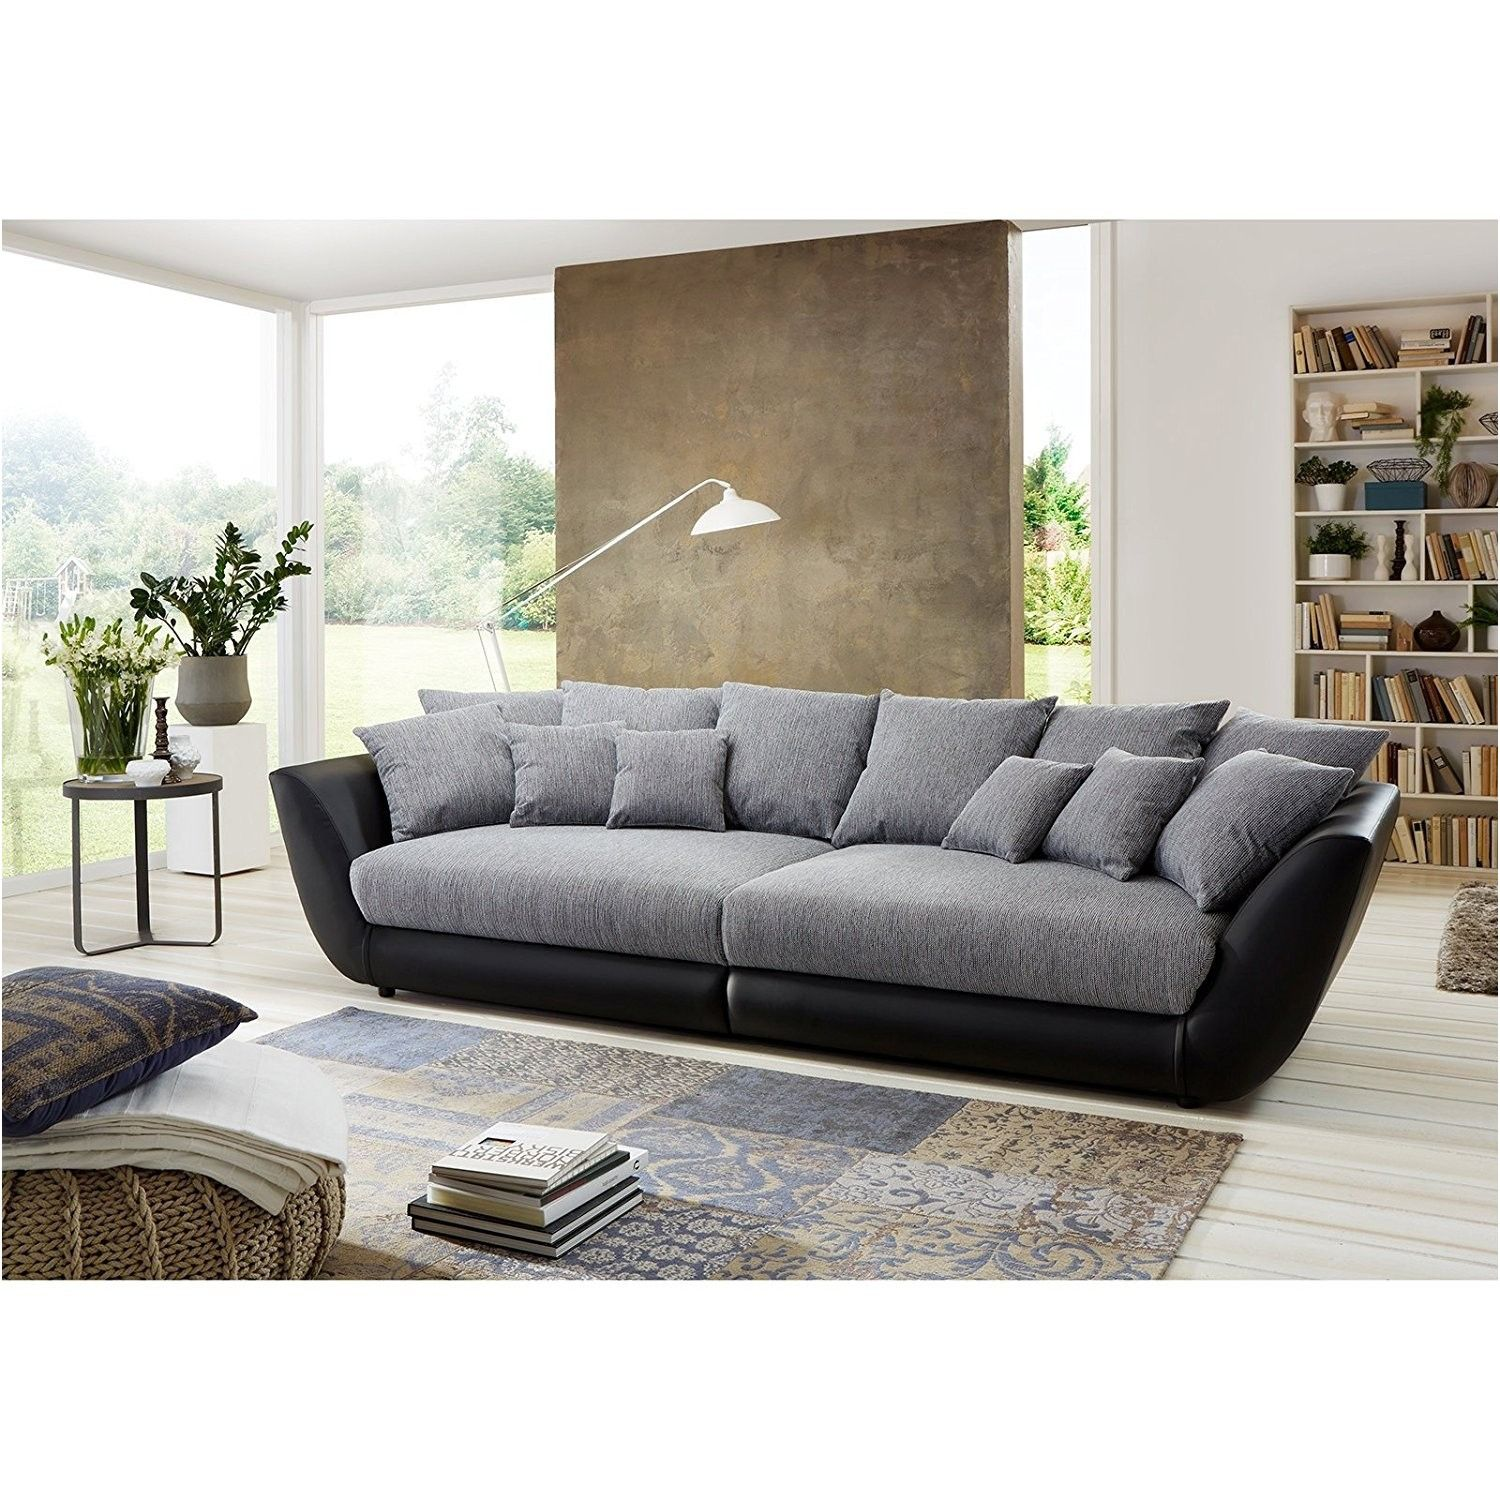 Typisch 2er Sofa Mit Relaxfunktion In 2020 Large Living Room Furniture Sectional Sofa With Chaise Living Room Furniture Inspiration